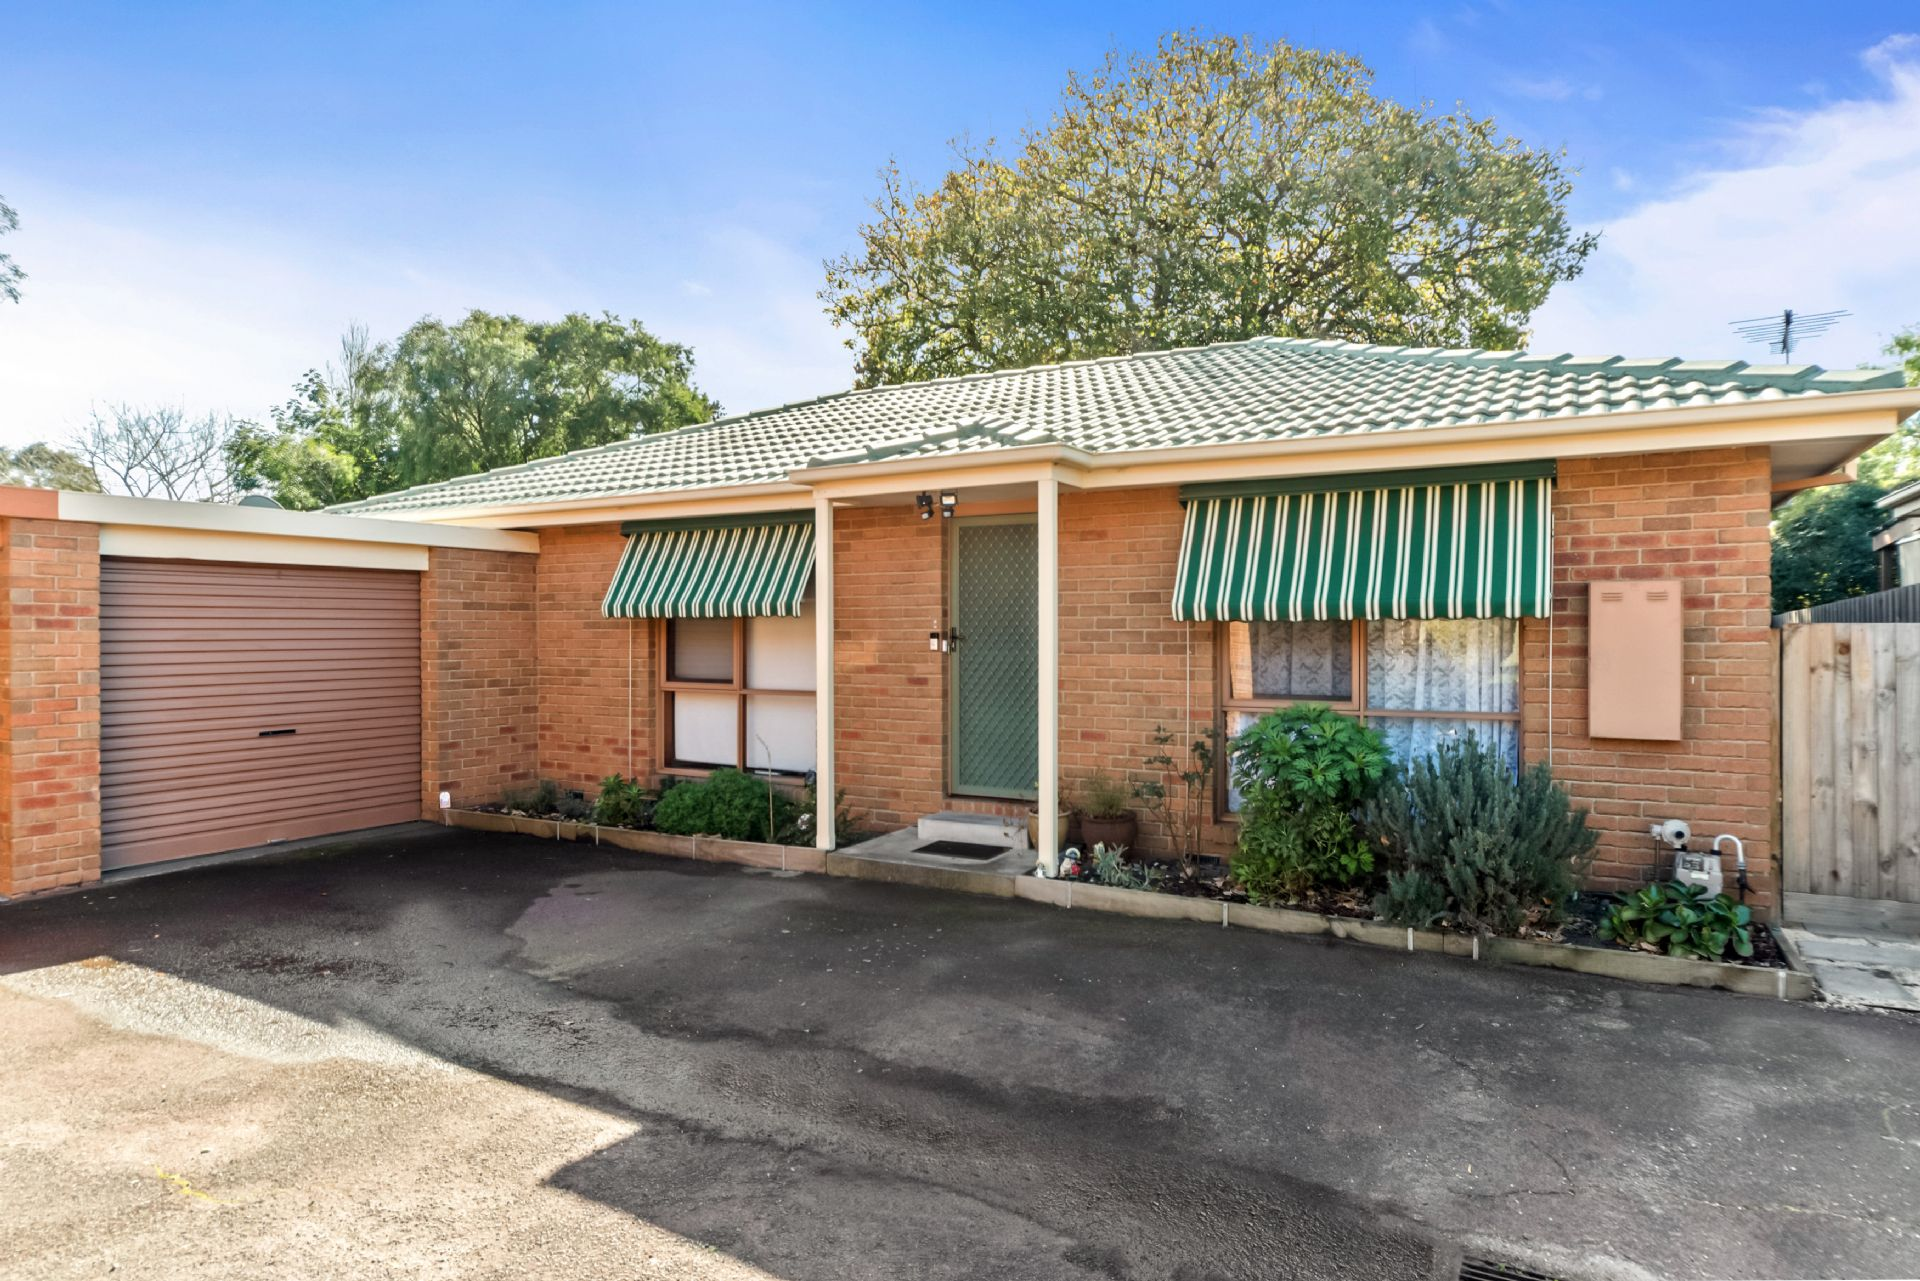 2/12 Neville Avenue, SEAFORD, VIC, 3198 - Image